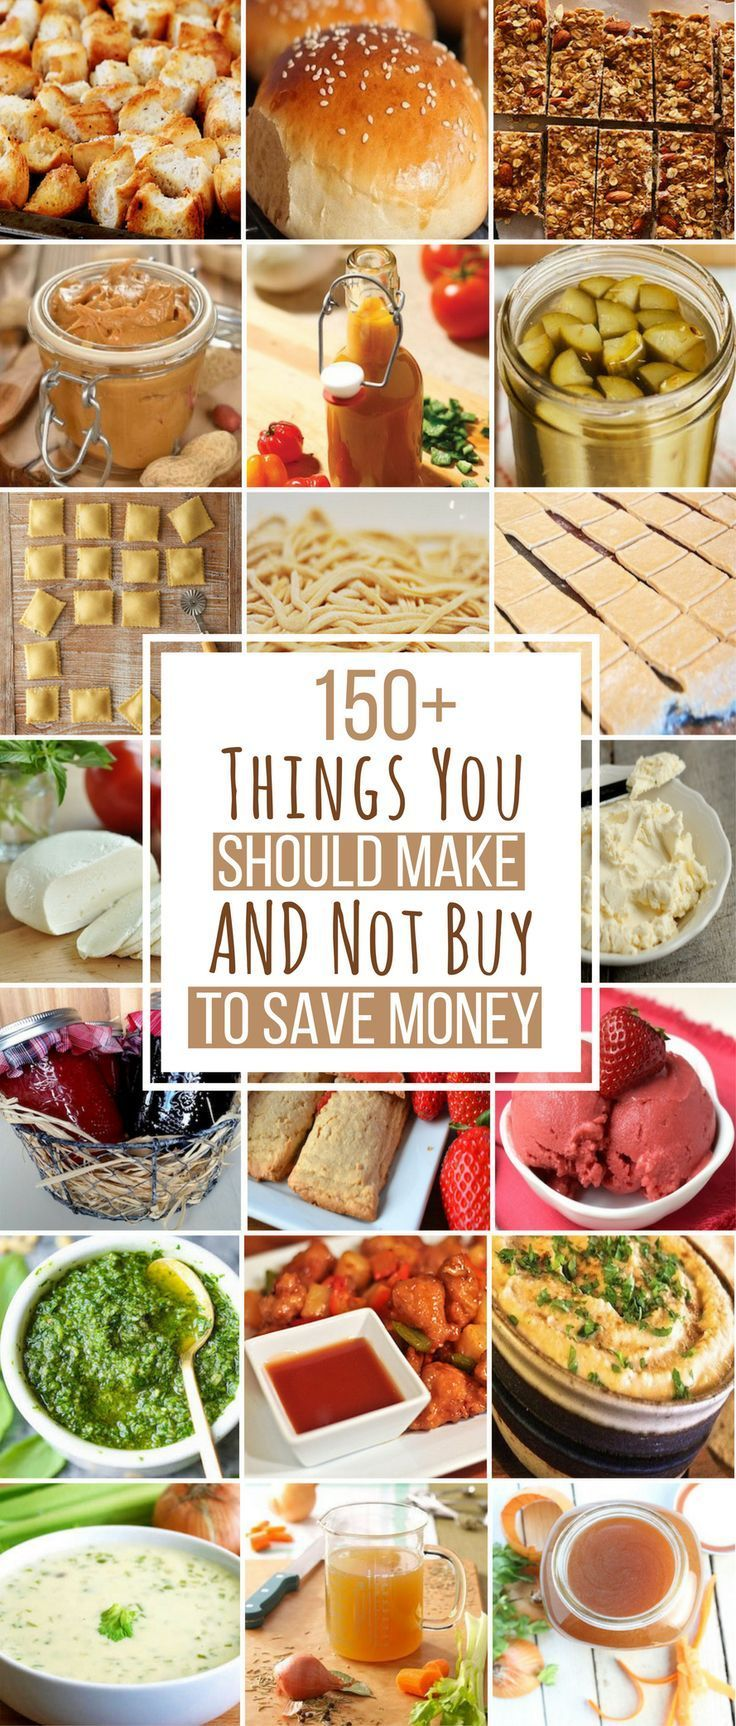 150 Things You Can Make Instead of Buying To Save Money